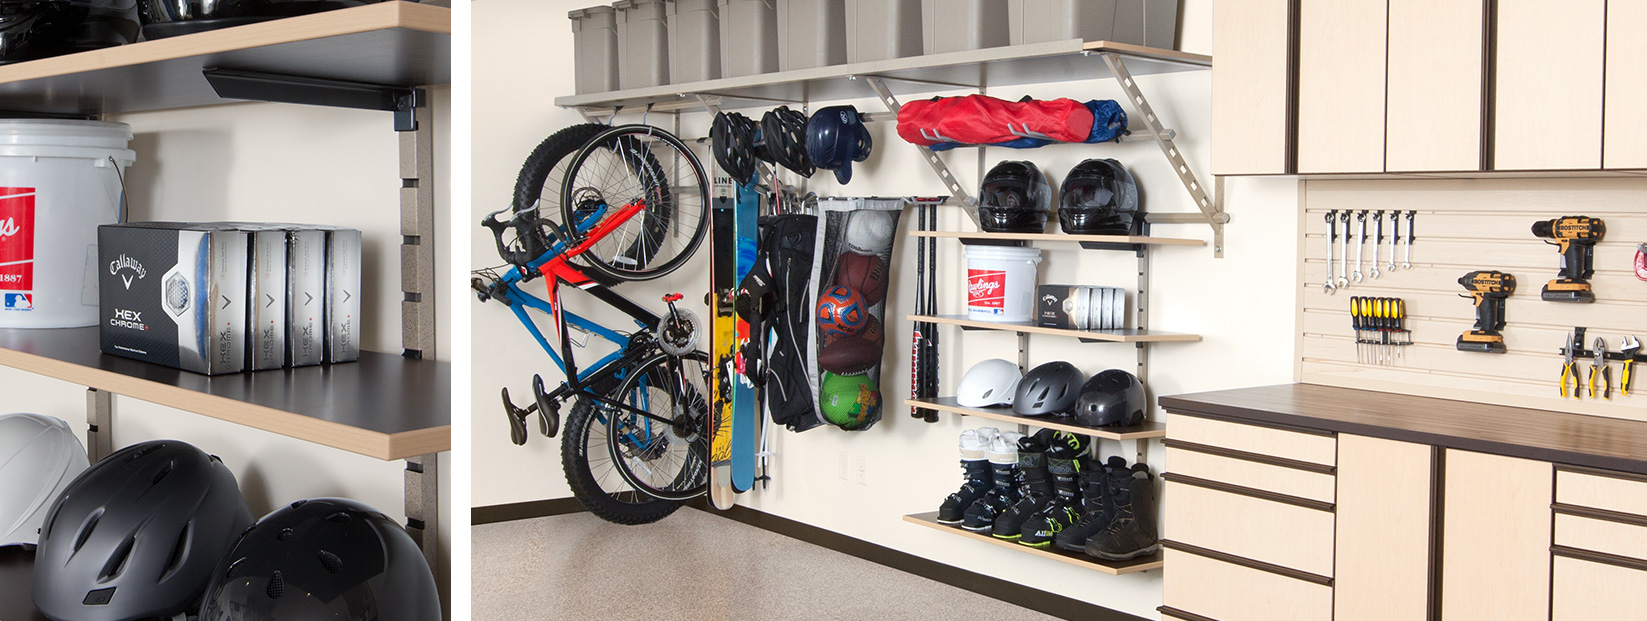 Garage Shelving System Charleston